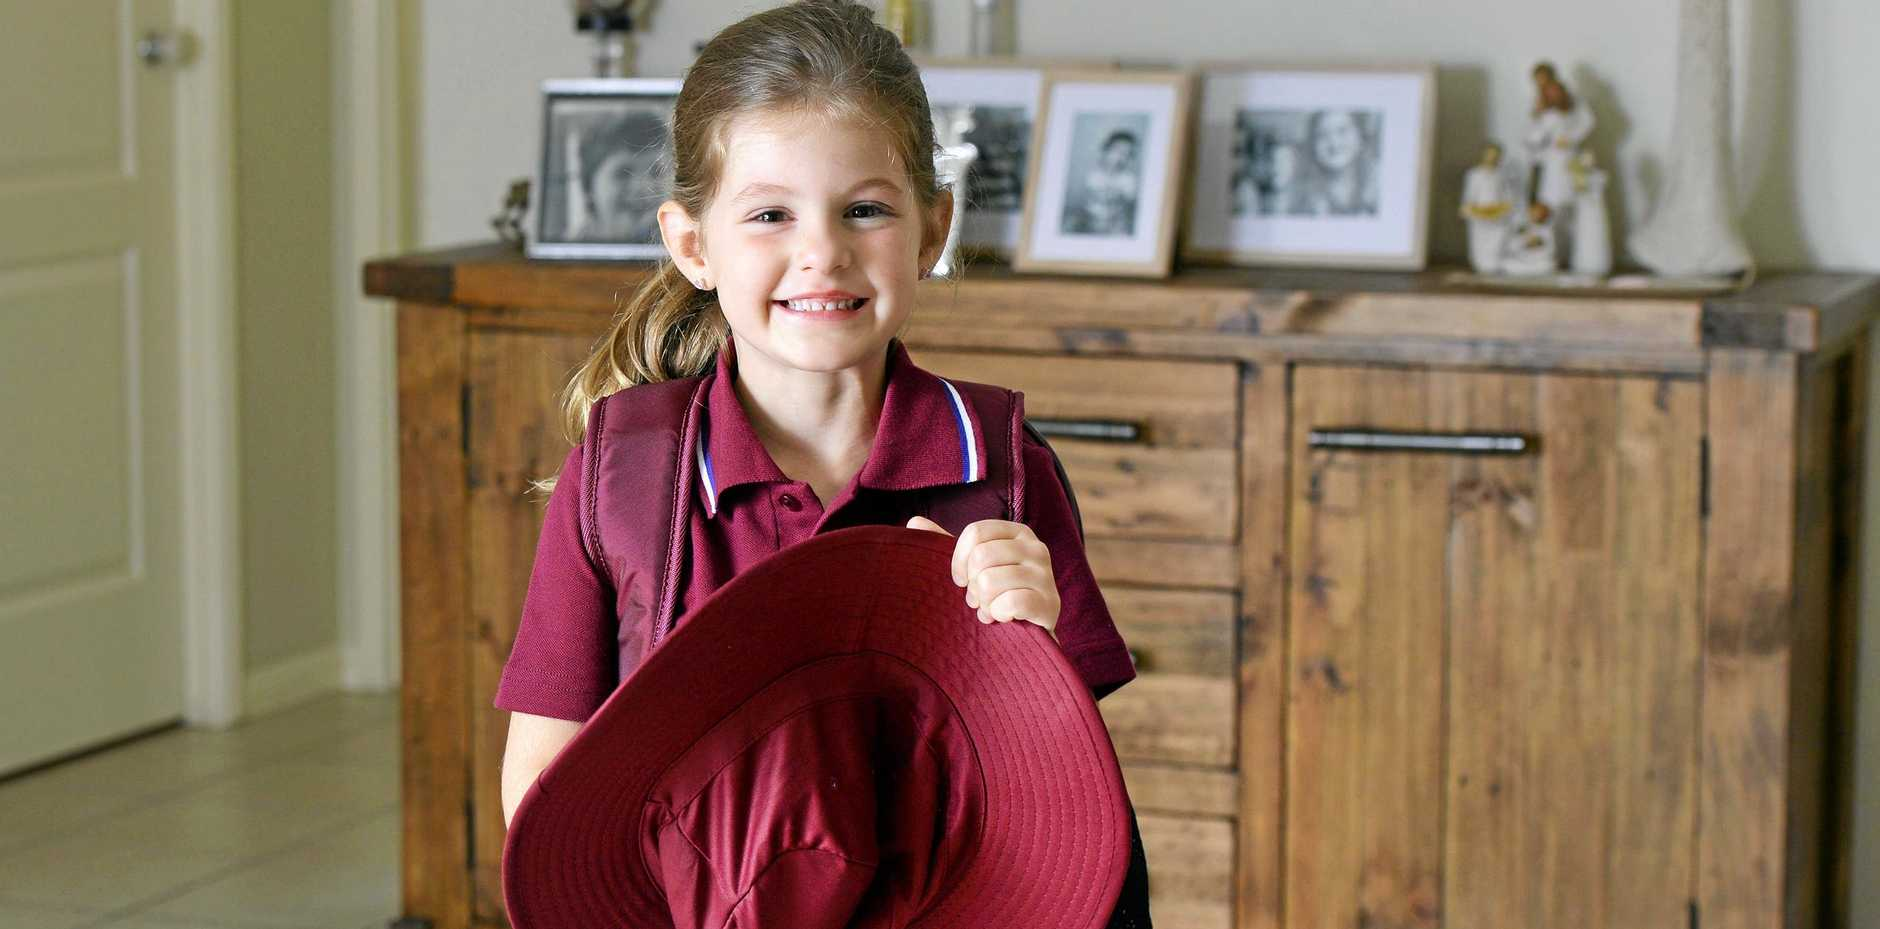 5-year-old Evie O'Sullivan of Brassall will be starting her first day of Prep class next week when school goes back.